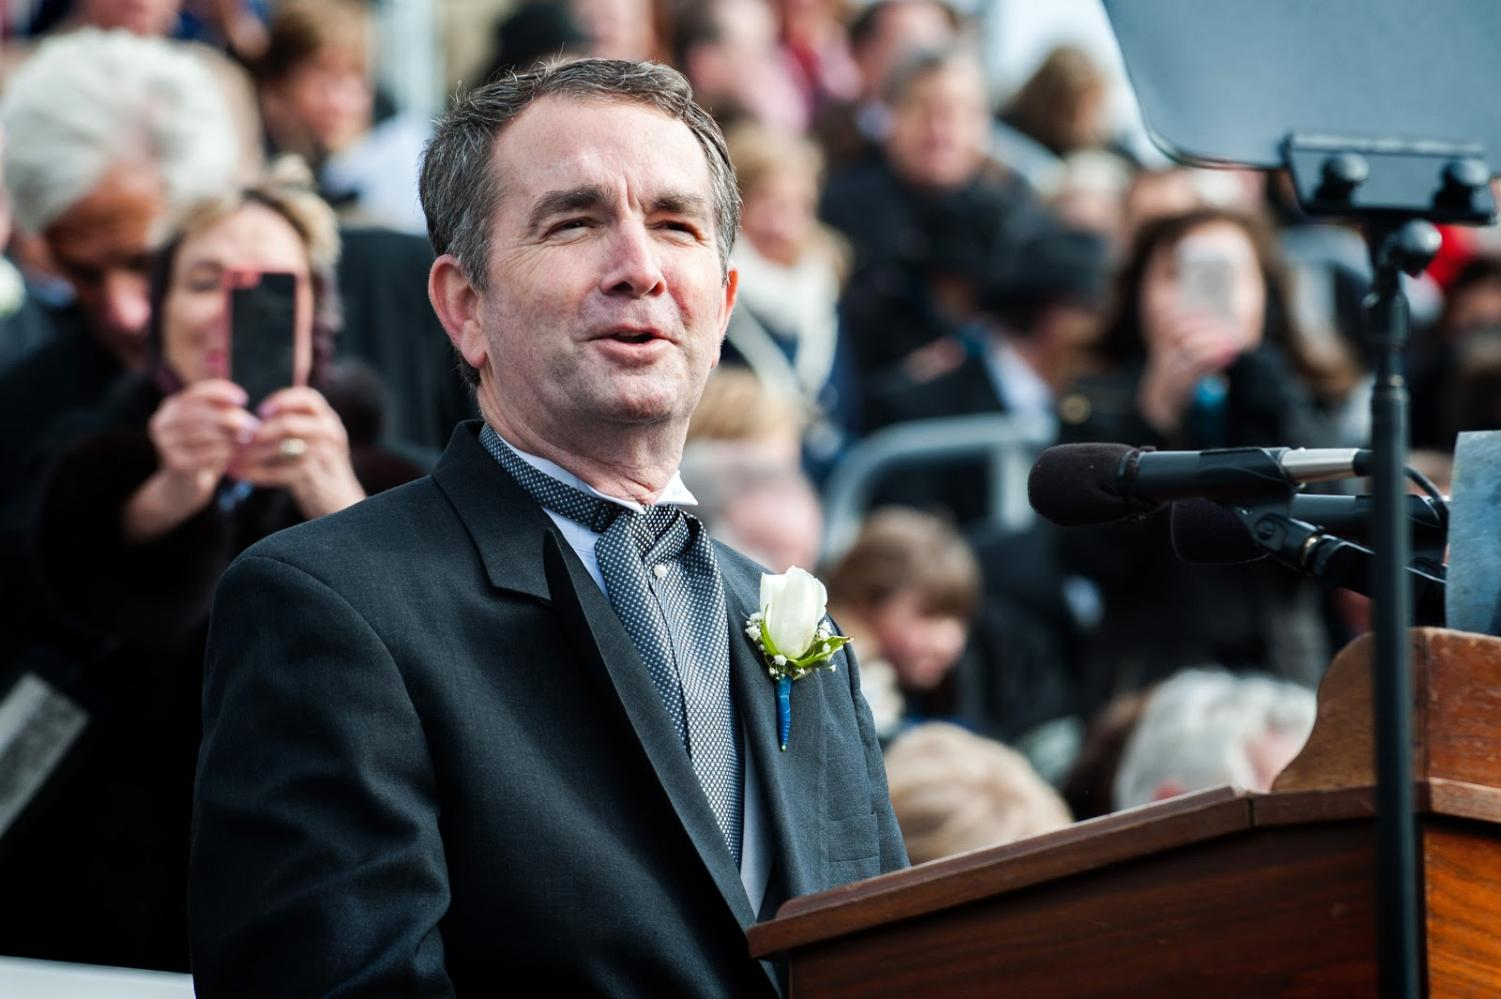 Governor Ralph Northam has faced continuous criticism from both sides of the aisle. However, his constituents are split on whether or not he should resign.